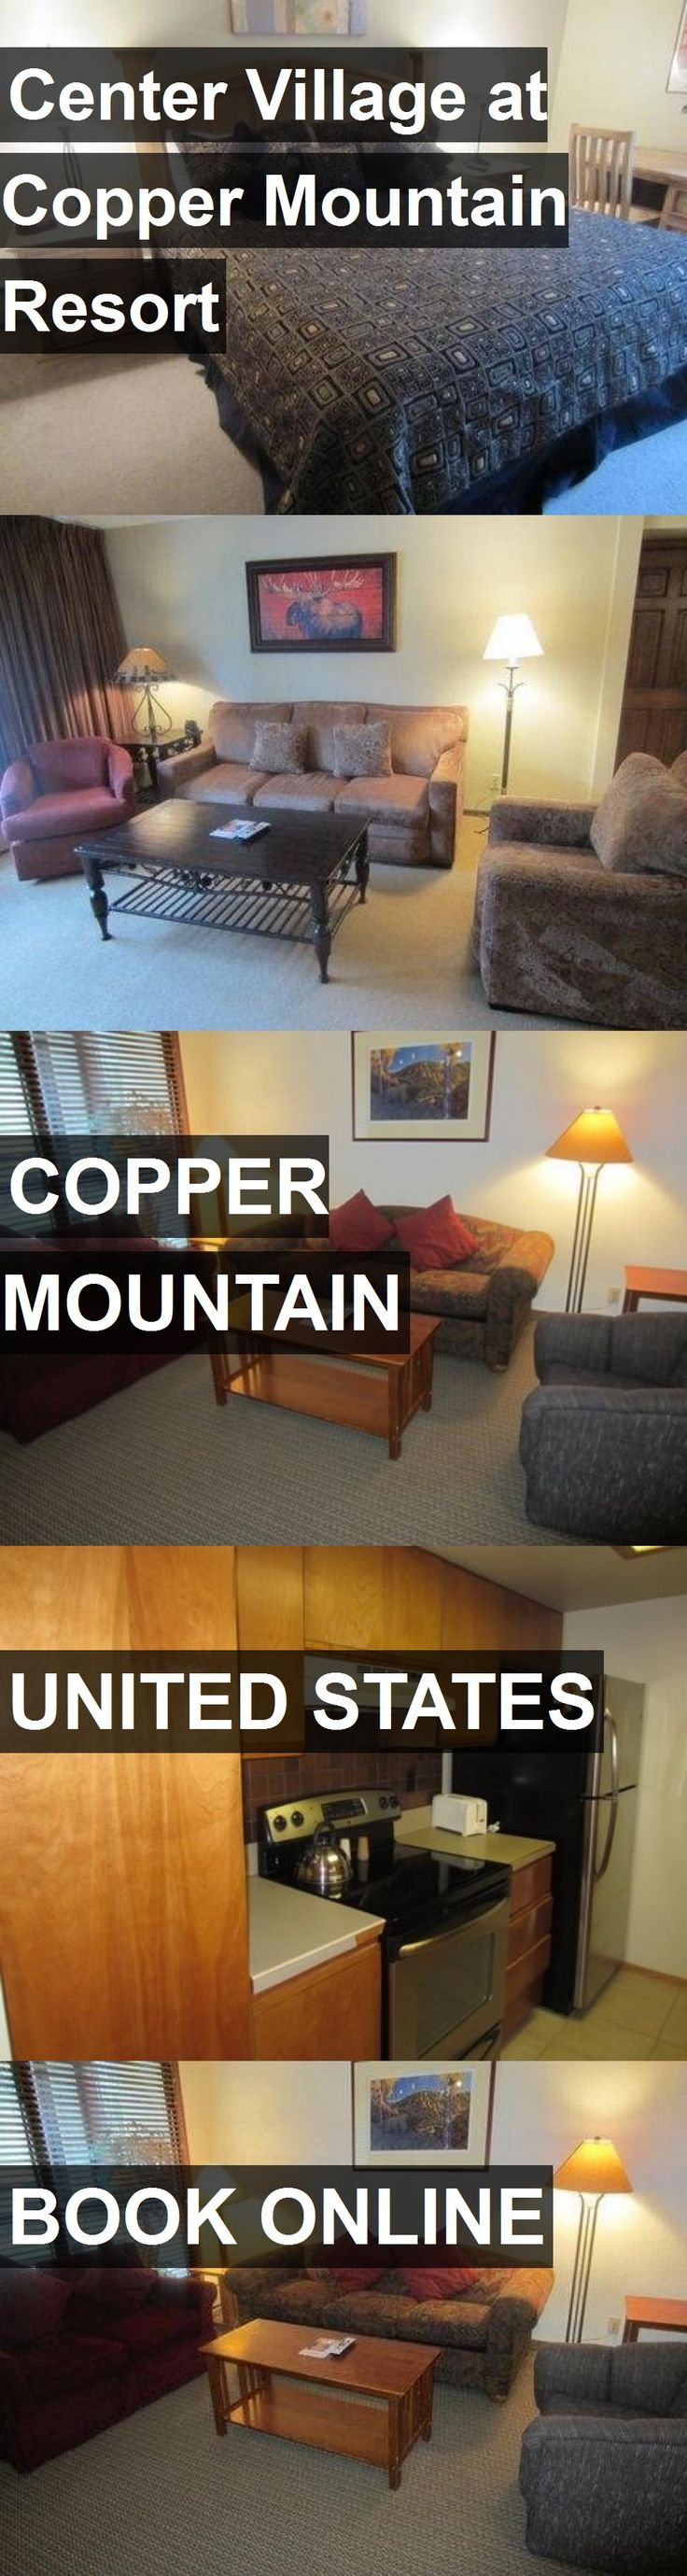 Hotel Center Village at Copper Mountain Resort in Copper Mountain, United States. For more information, photos, reviews and best prices please follow the link. #UnitedStates #CopperMountain #CenterVillageatCopperMountainResort #hotel #travel #vacation